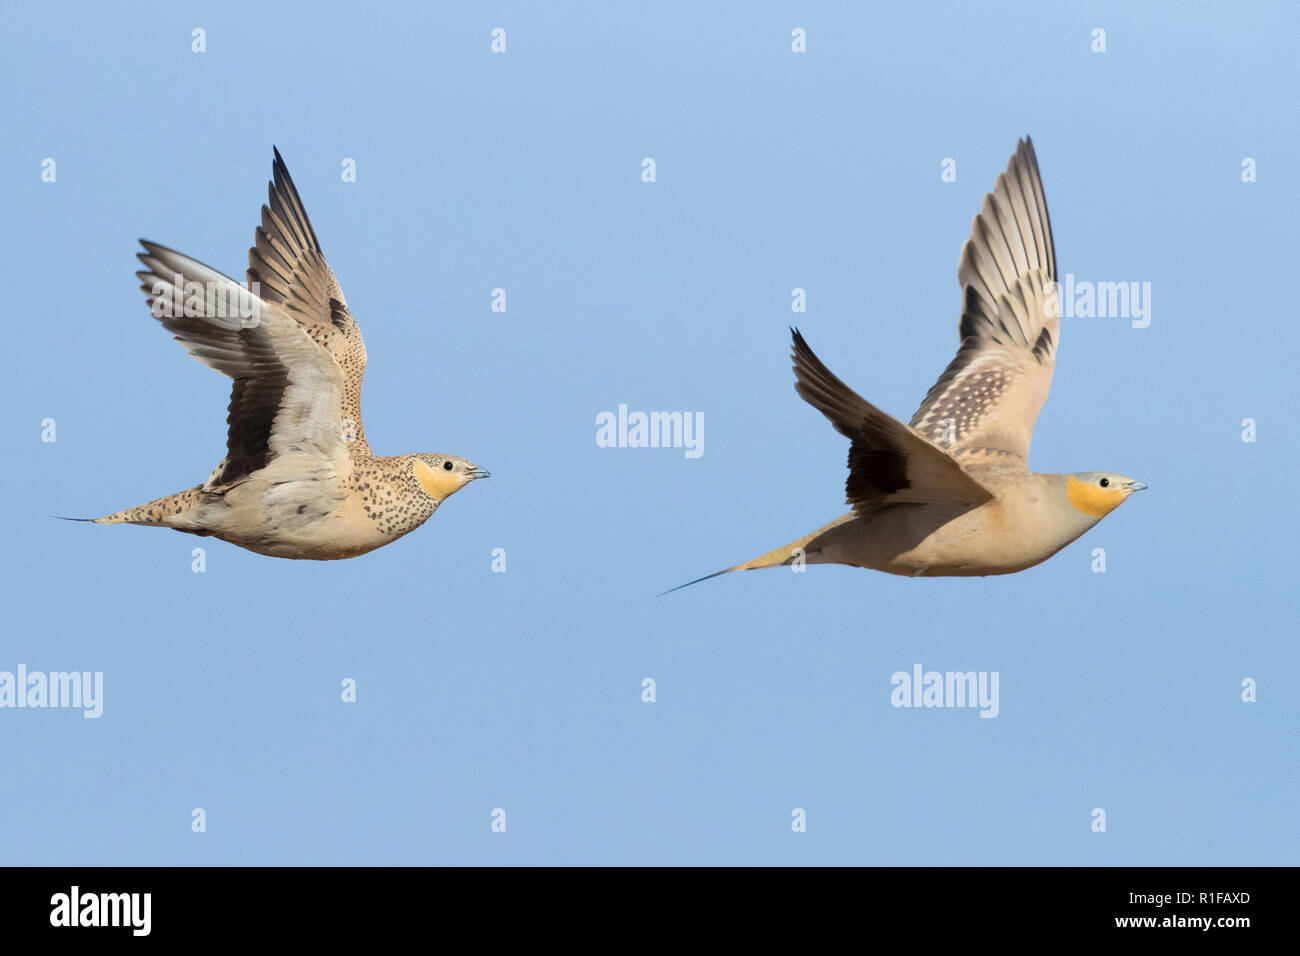 Spotted Sandgrouse (Pterocles senegallus), a male and a female in flight - Stock Image